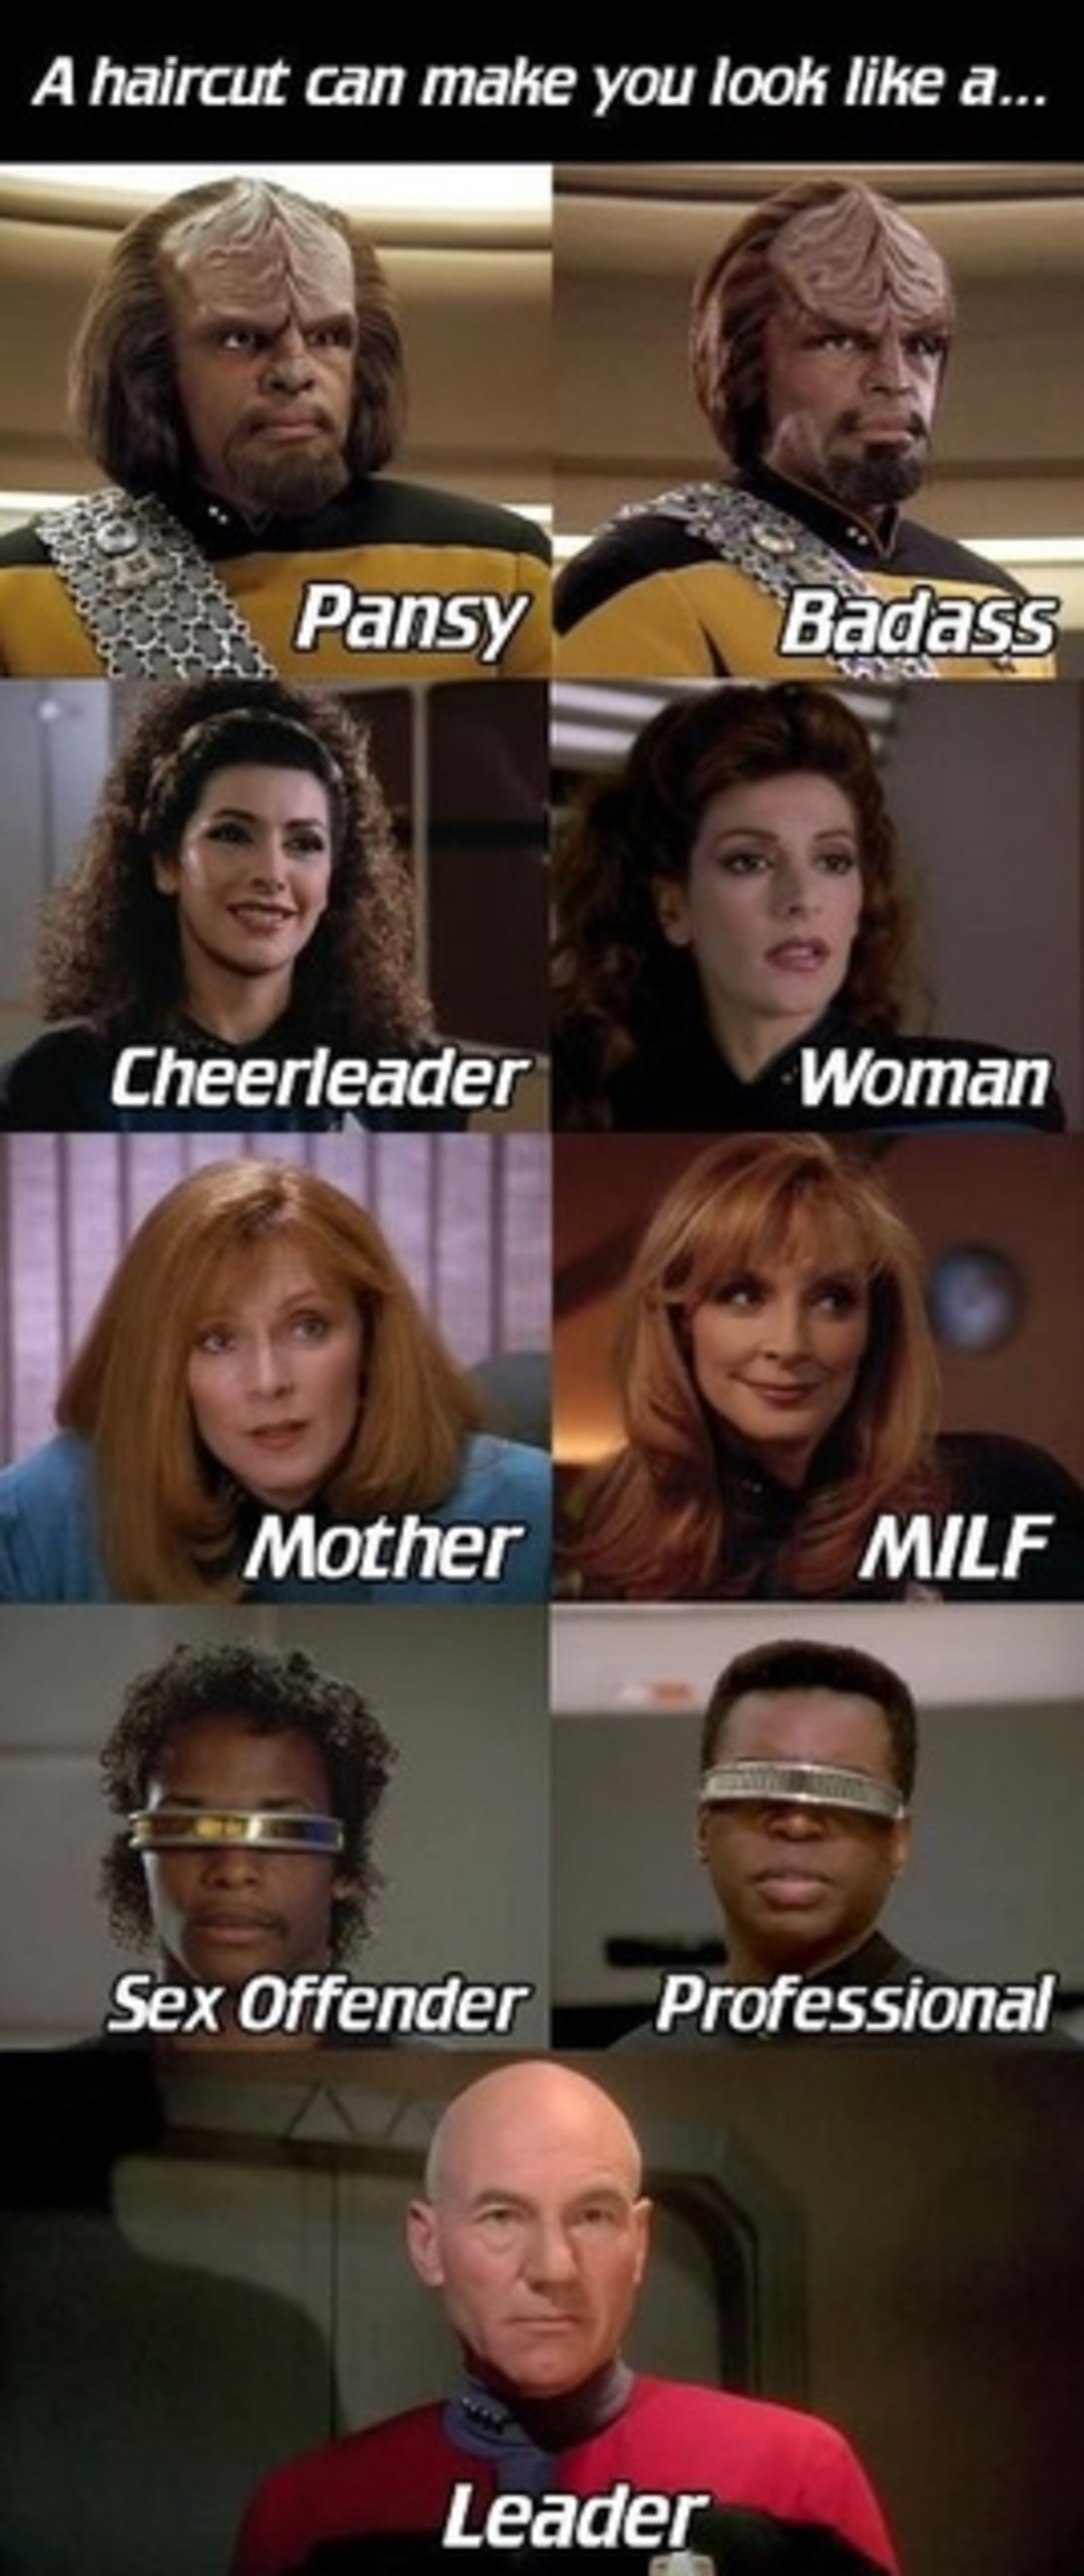 hair. . A Mina can maha you Farah We a... cheerleader lawman Q ''satiric . Mother . ANLF Sex tht' entier Professional Leader. i had to made really fast in paint pls excuse the bad edit